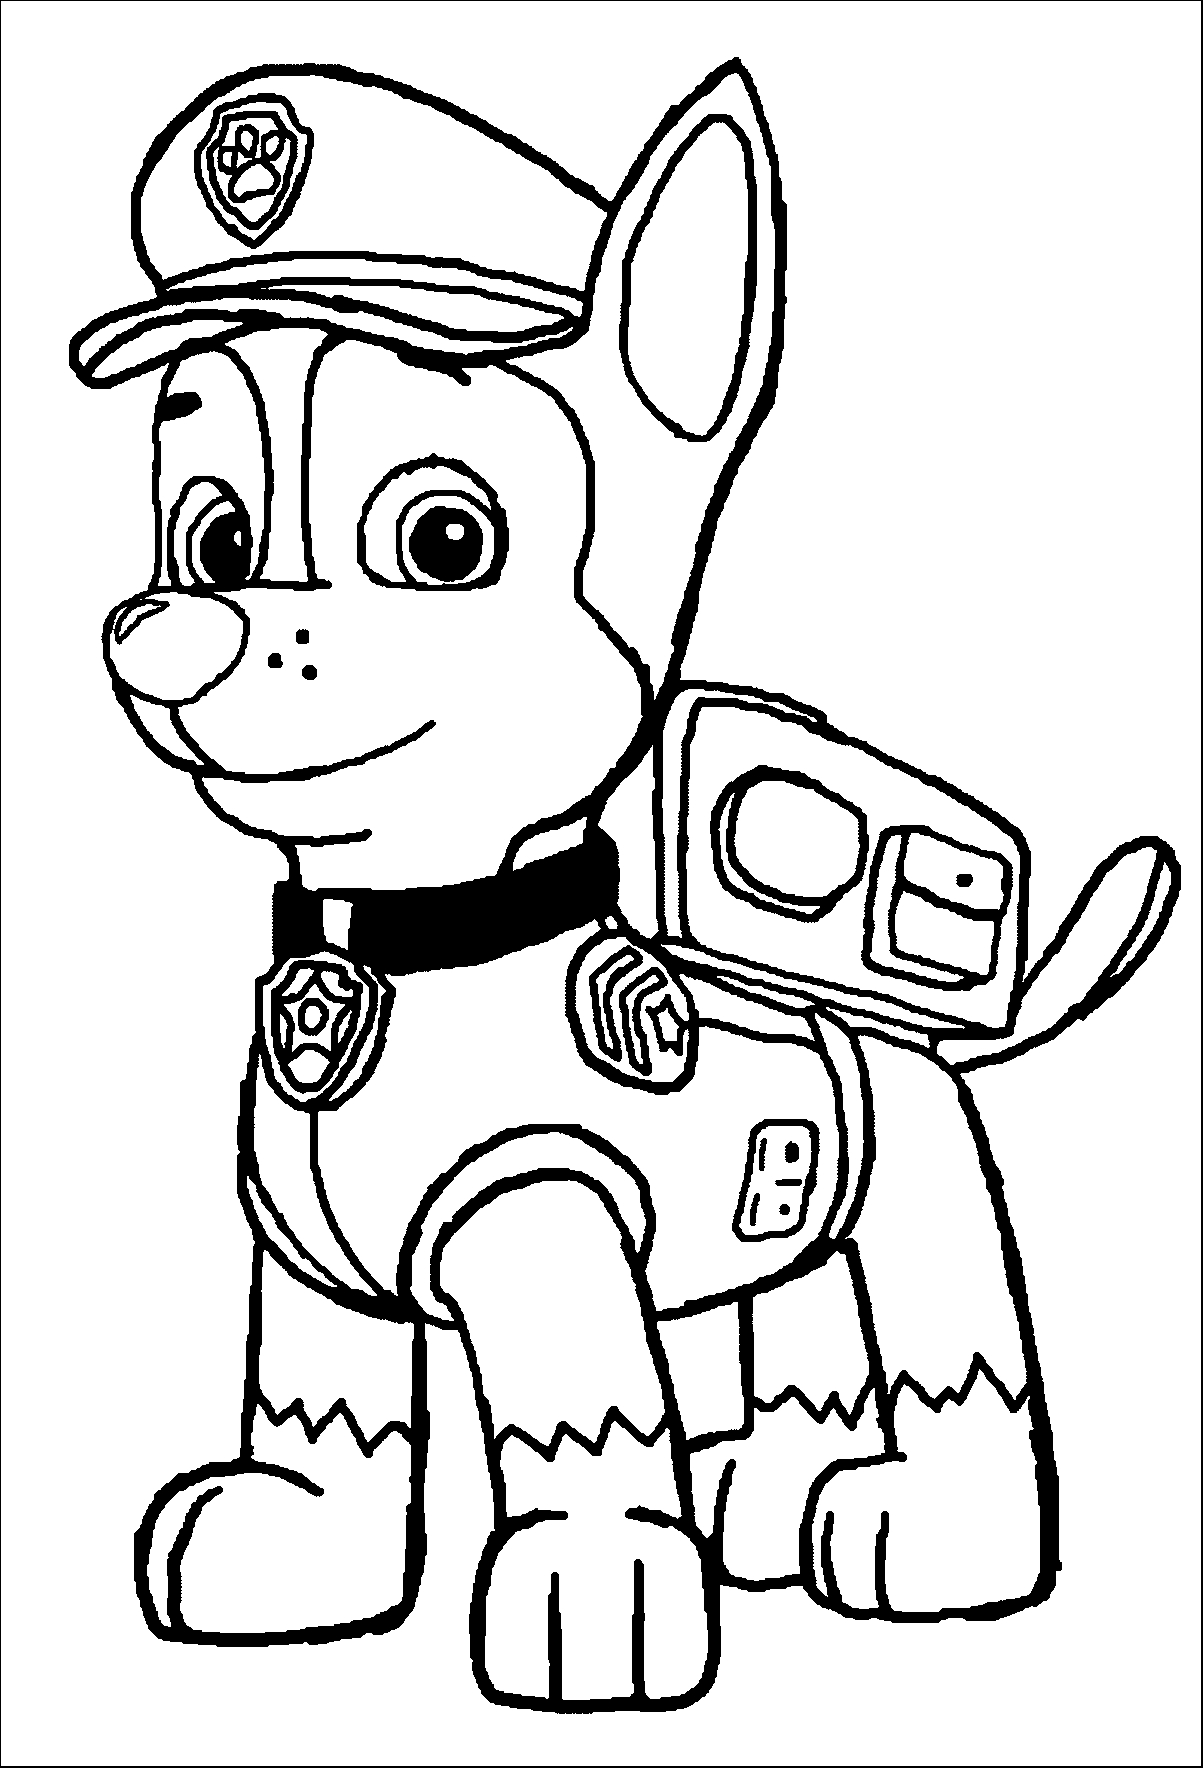 paw patrol coloring outline everest paw patrol coloring lesson kids coloring page patrol outline coloring paw